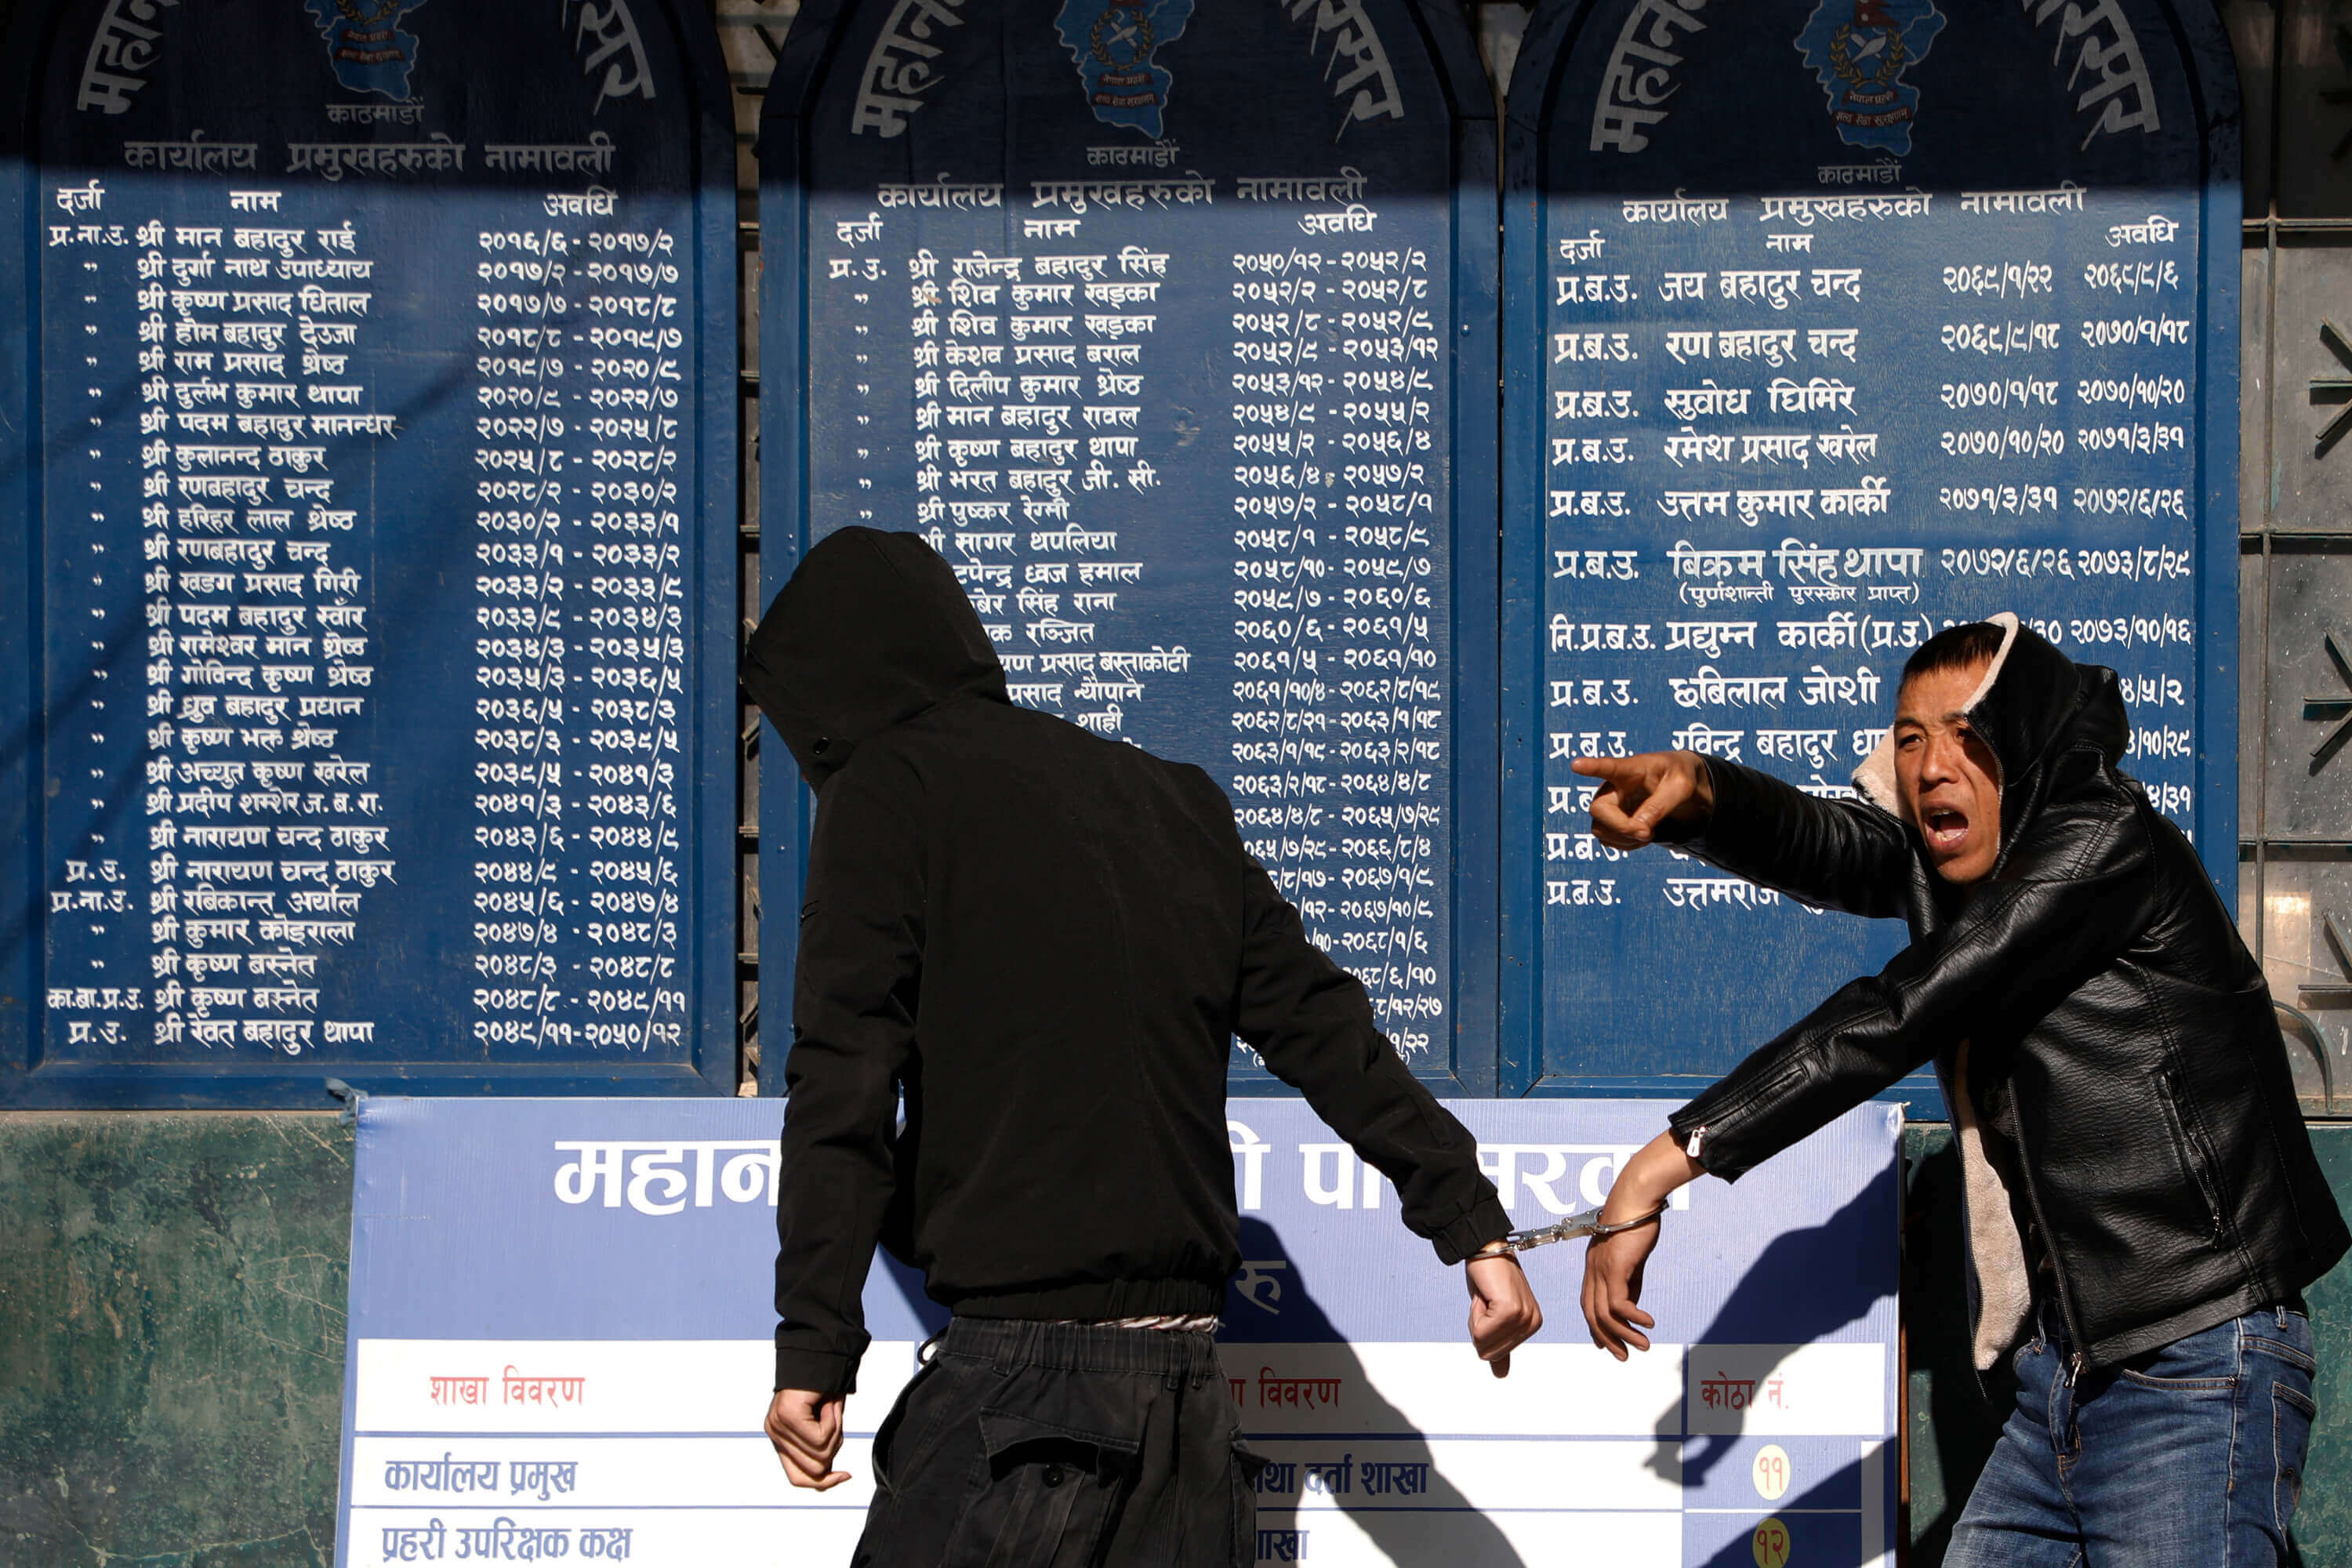 China gets Nepal to detain its citizens in Kathmandu